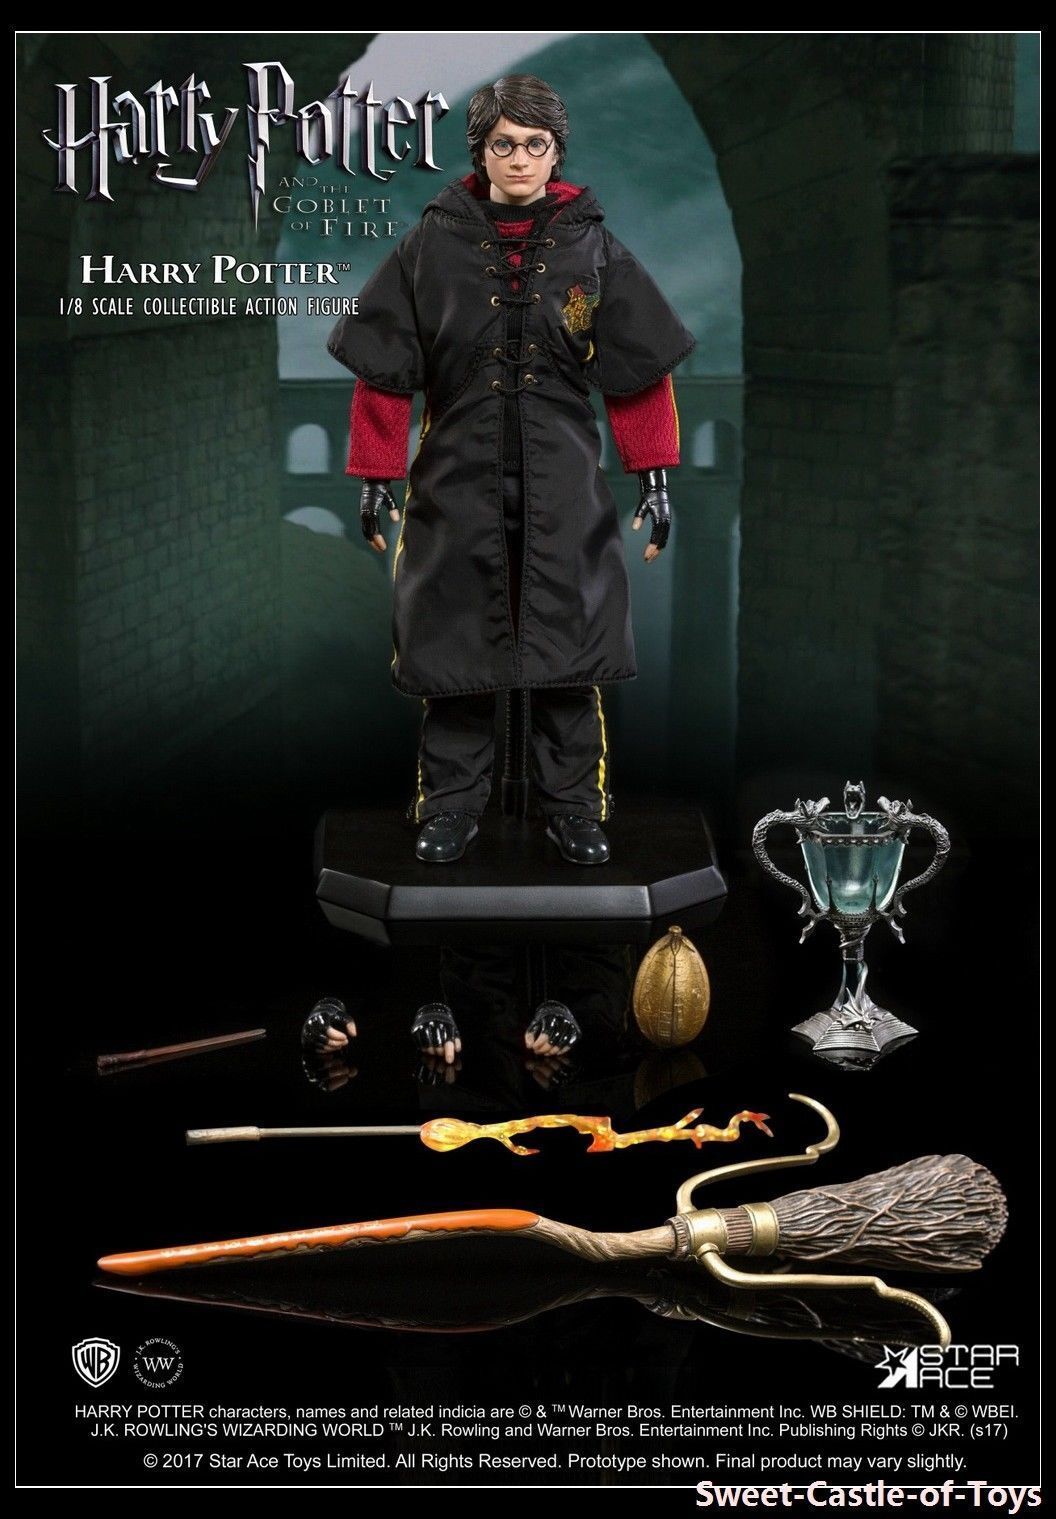 SA8001A – The 1 8th scale Harry Potter (Tri-wizard Tournament Version) Be the fi